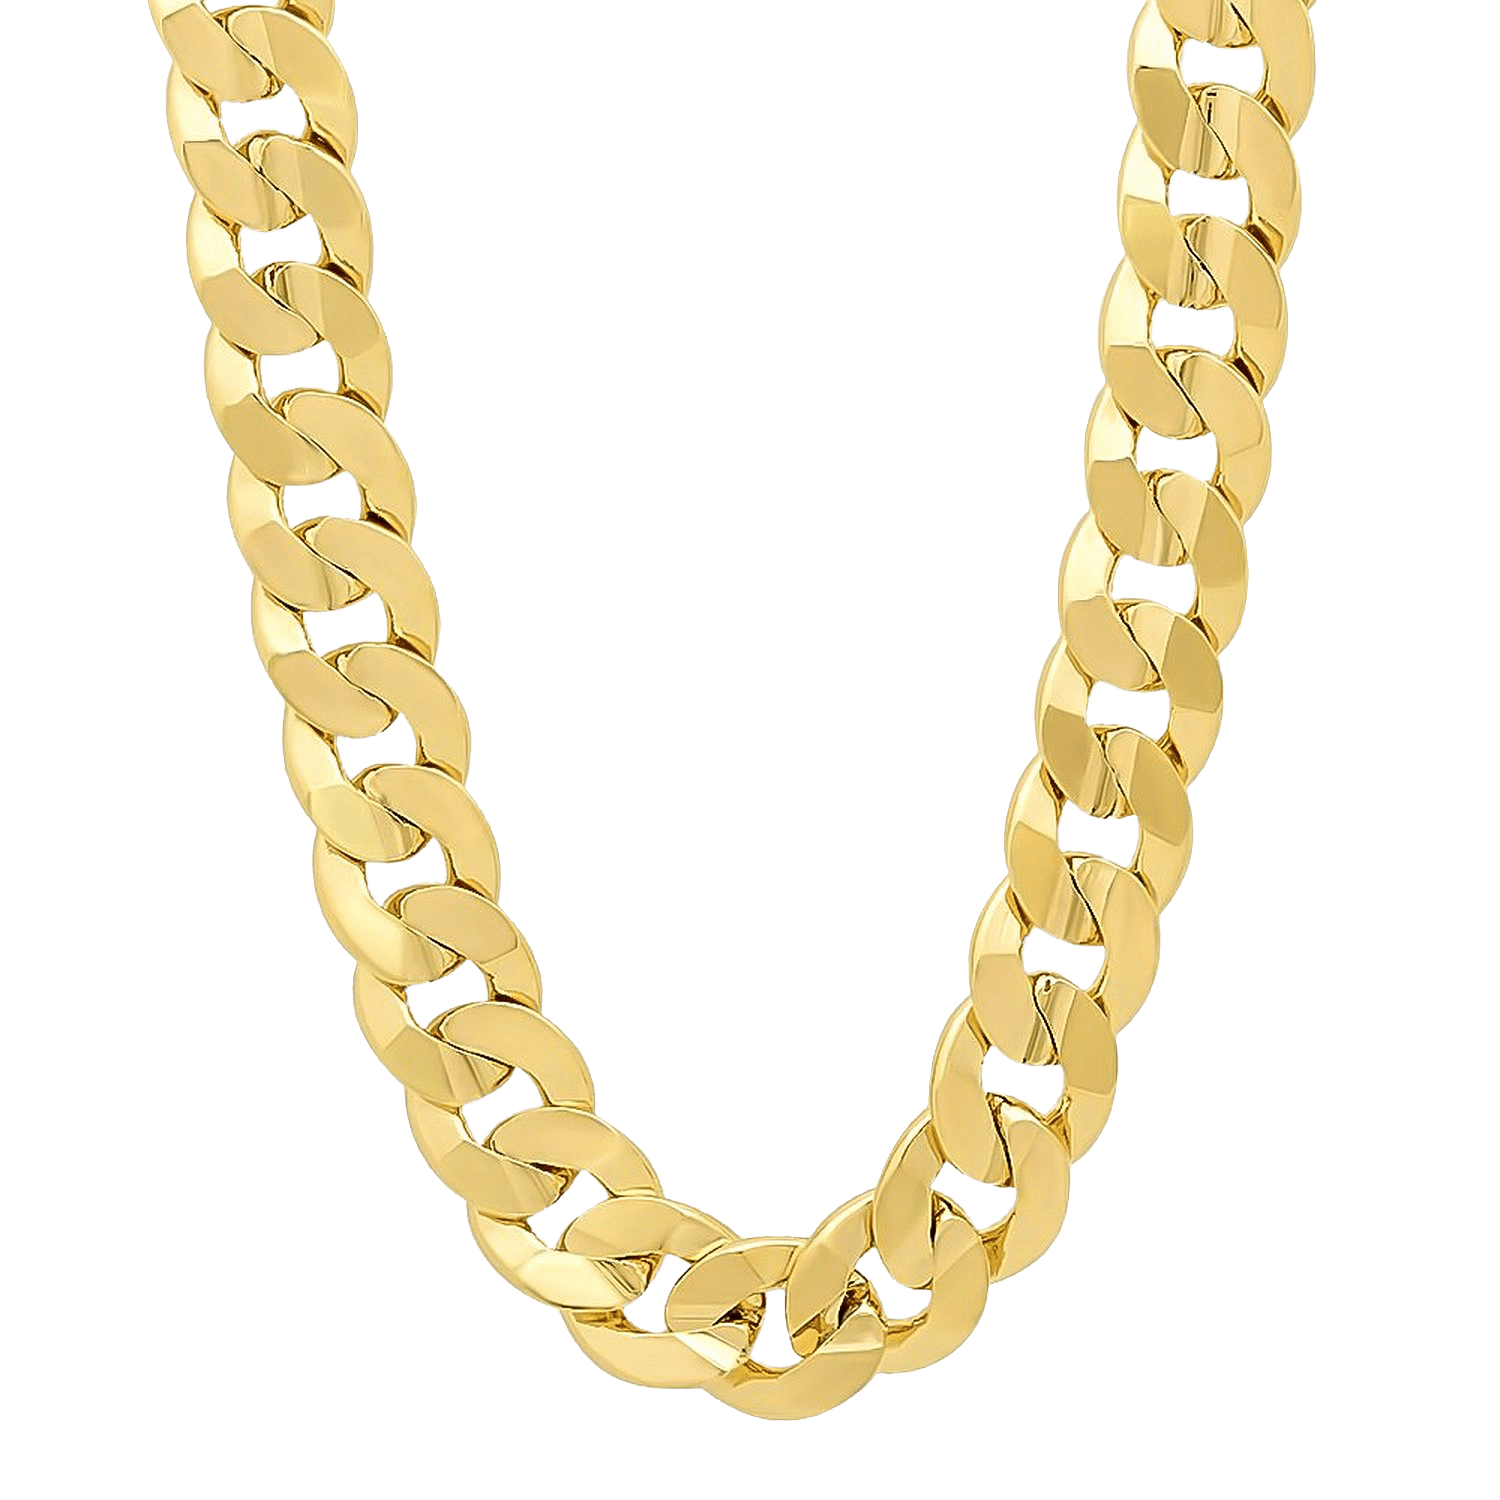 1500x1500 Thug Life Heavy Gold Chain Transparent Png